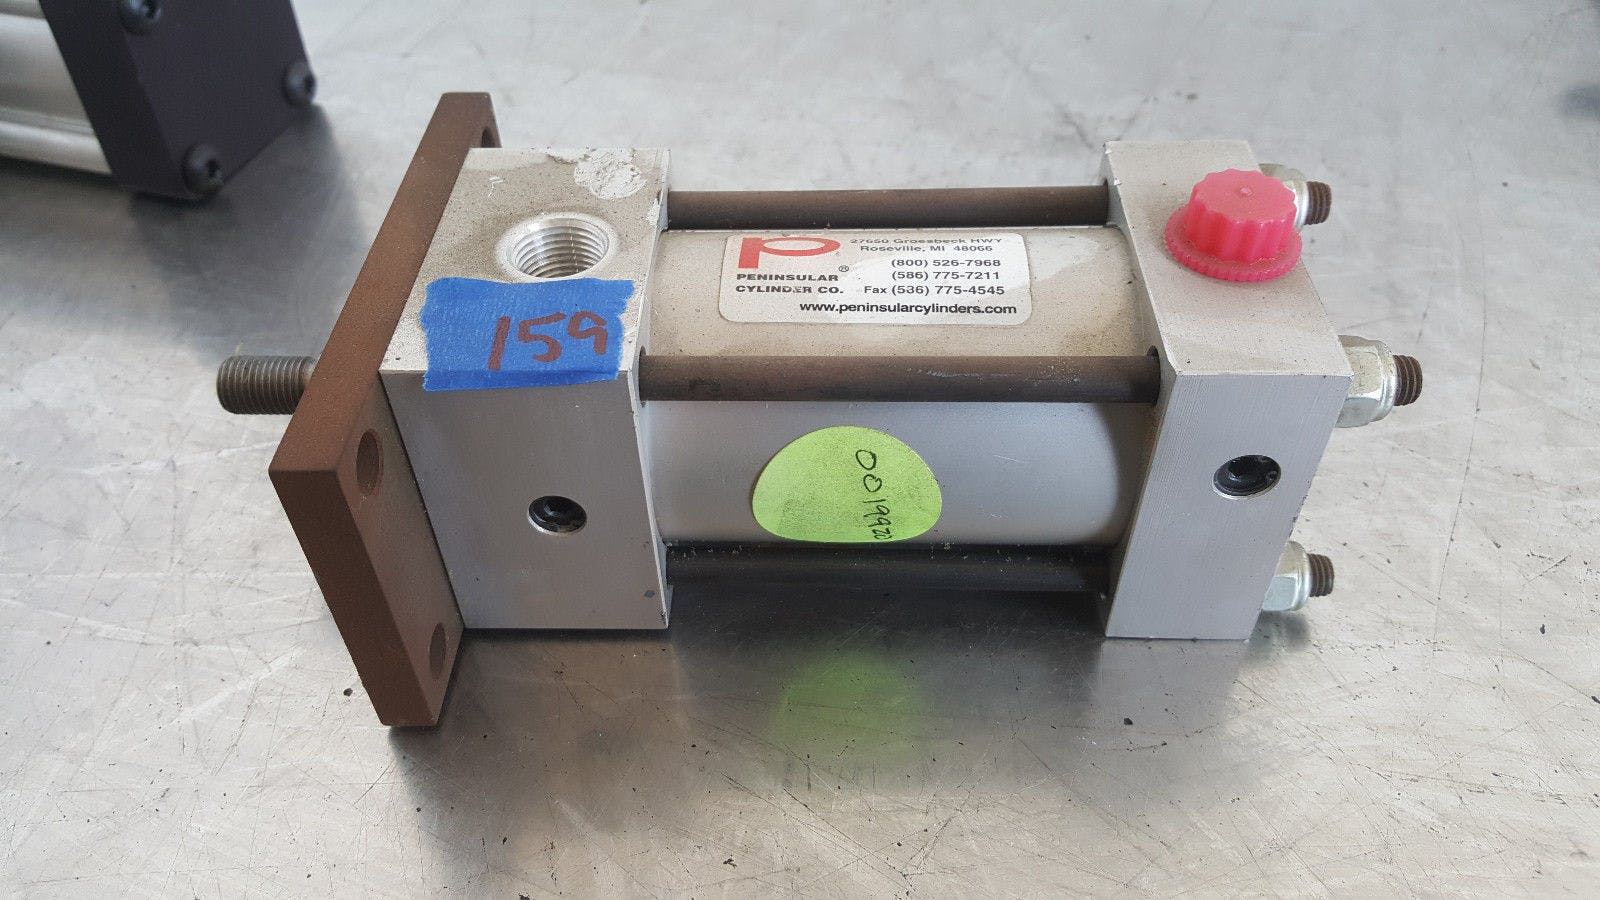 Peninsular 02.00 LM4200A 2.000 250 Psi Air Pneumatic Cylinder New - sold by Jak's Restaurant Supply